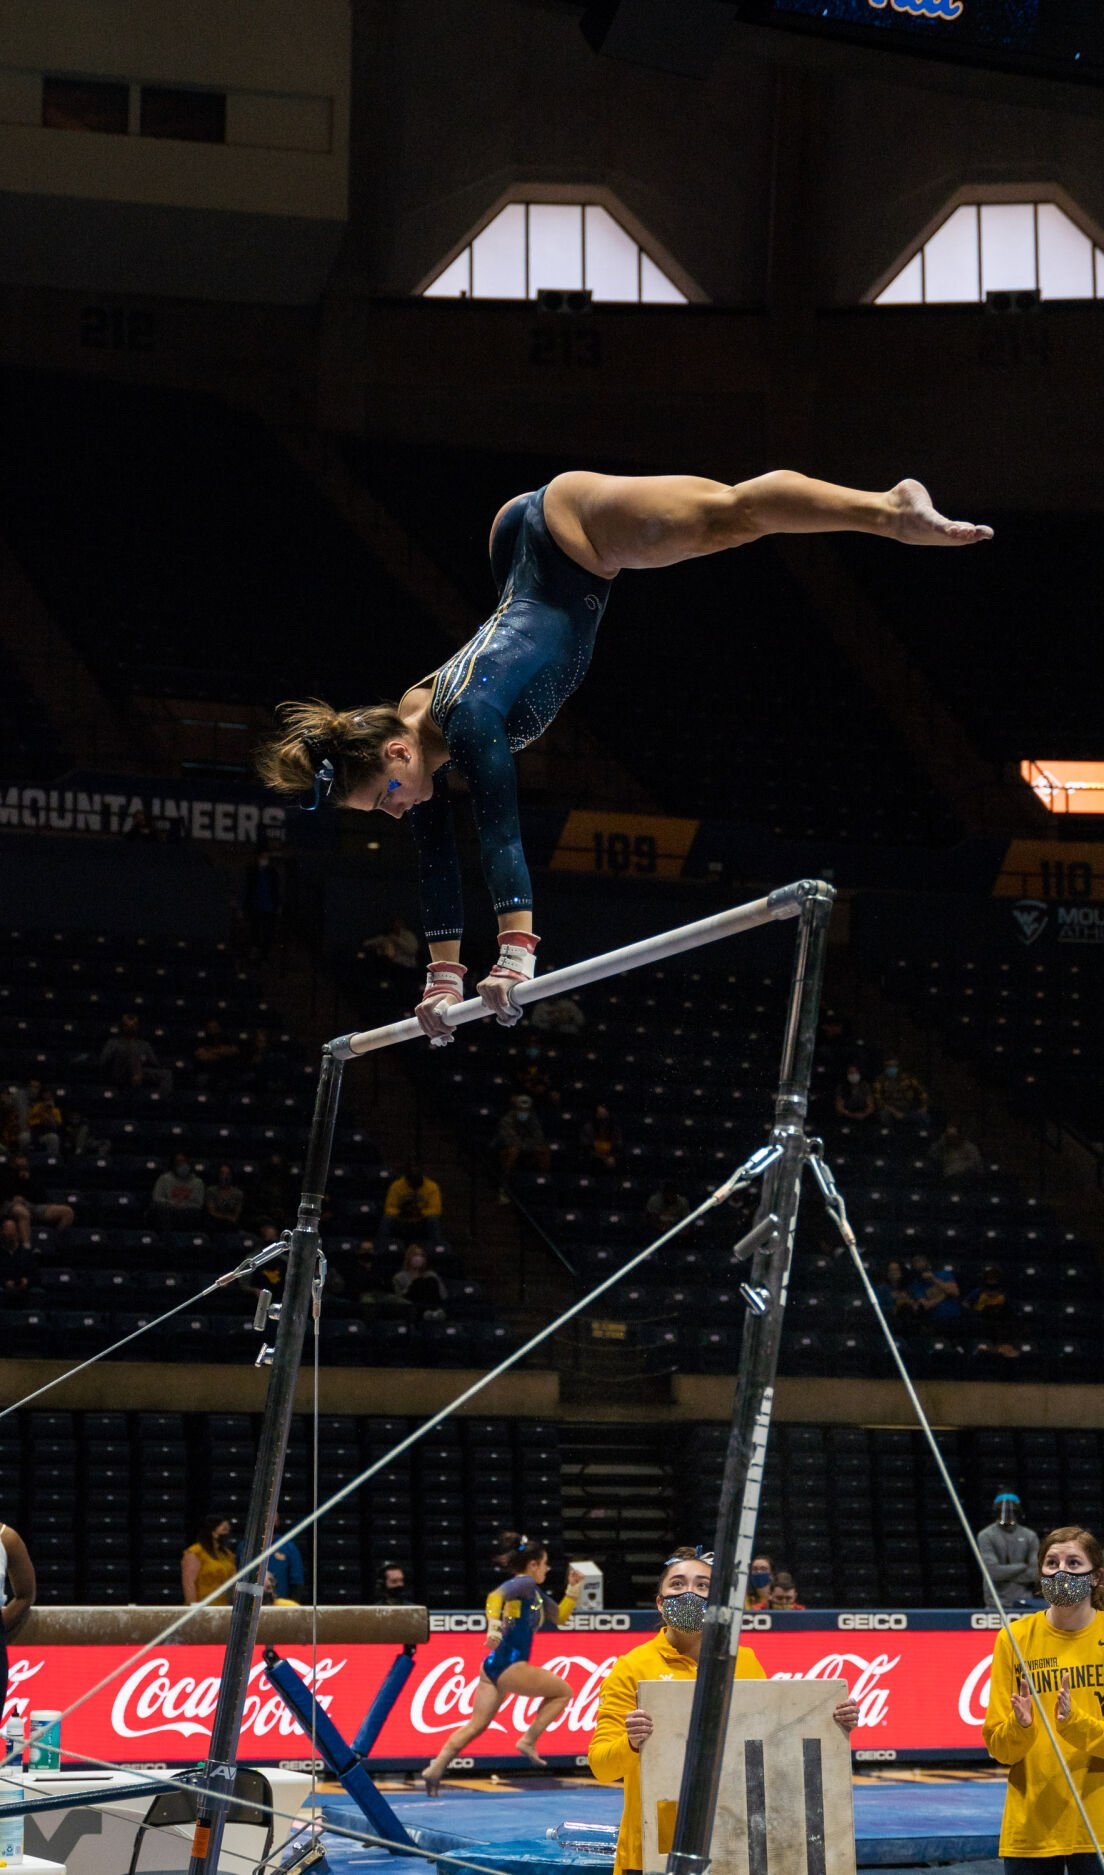 A West Virginia gymnast competes in the Big 12 Championships at the WVU Coliseum on March 20, 2021.